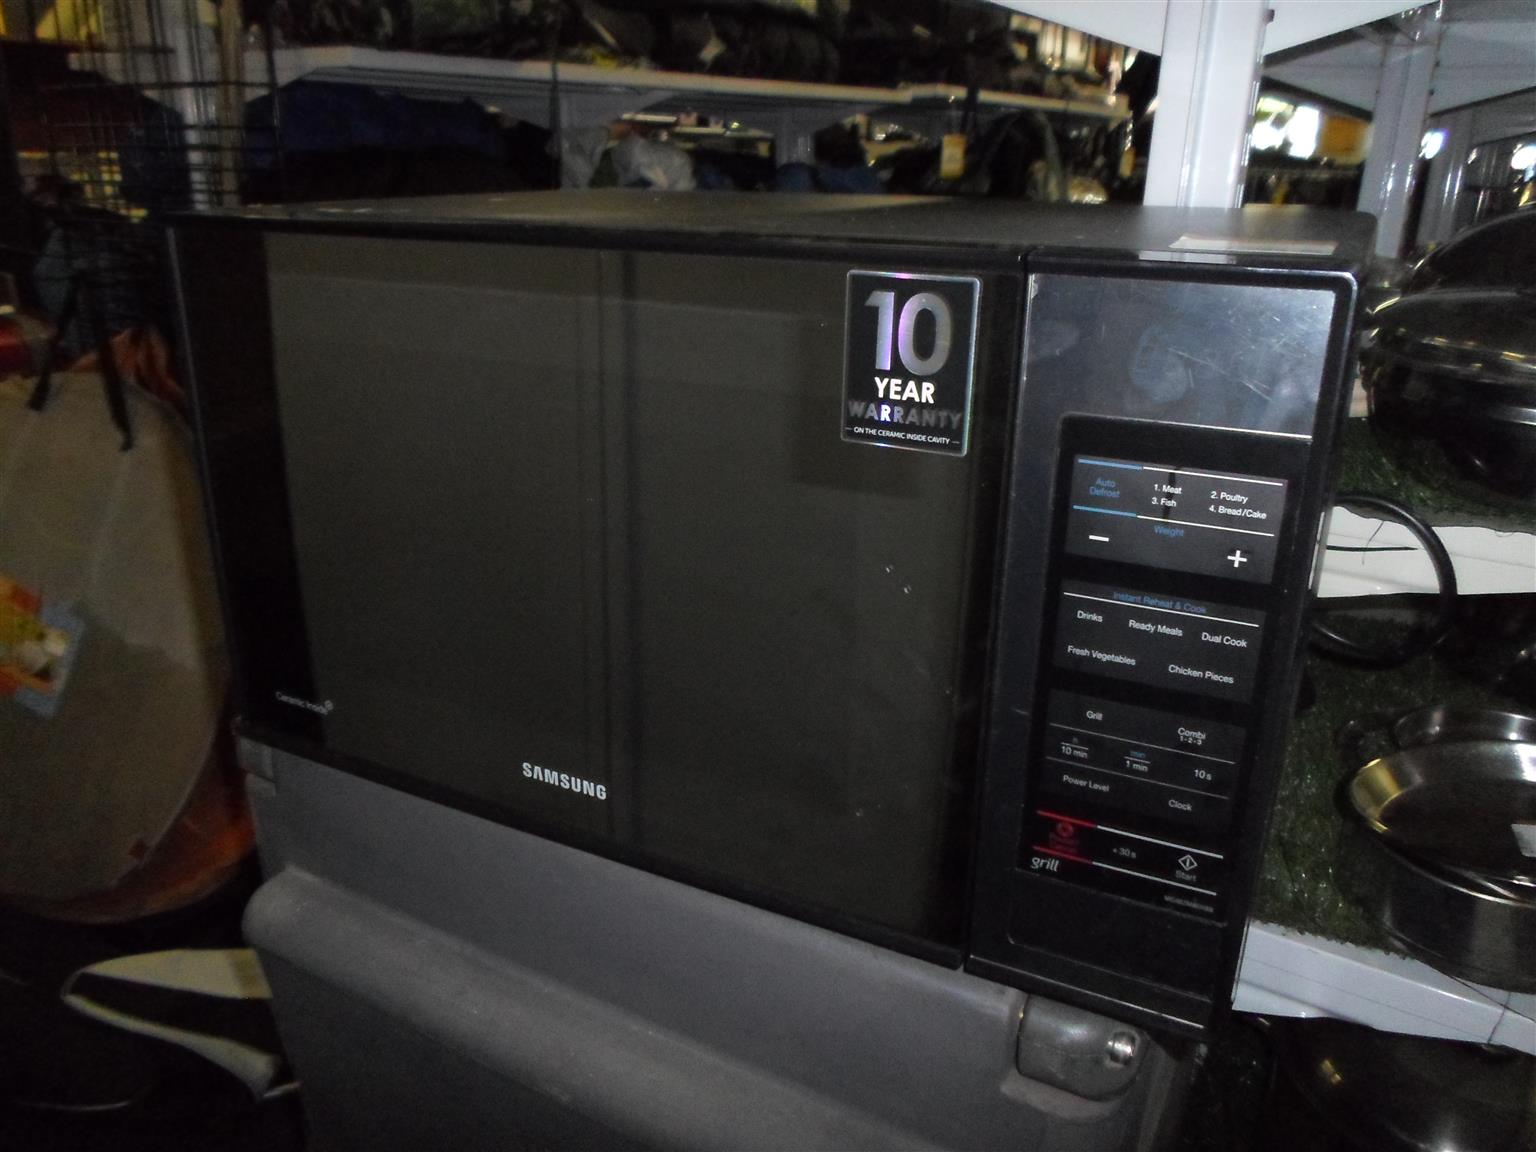 Samsung Grill Microwave